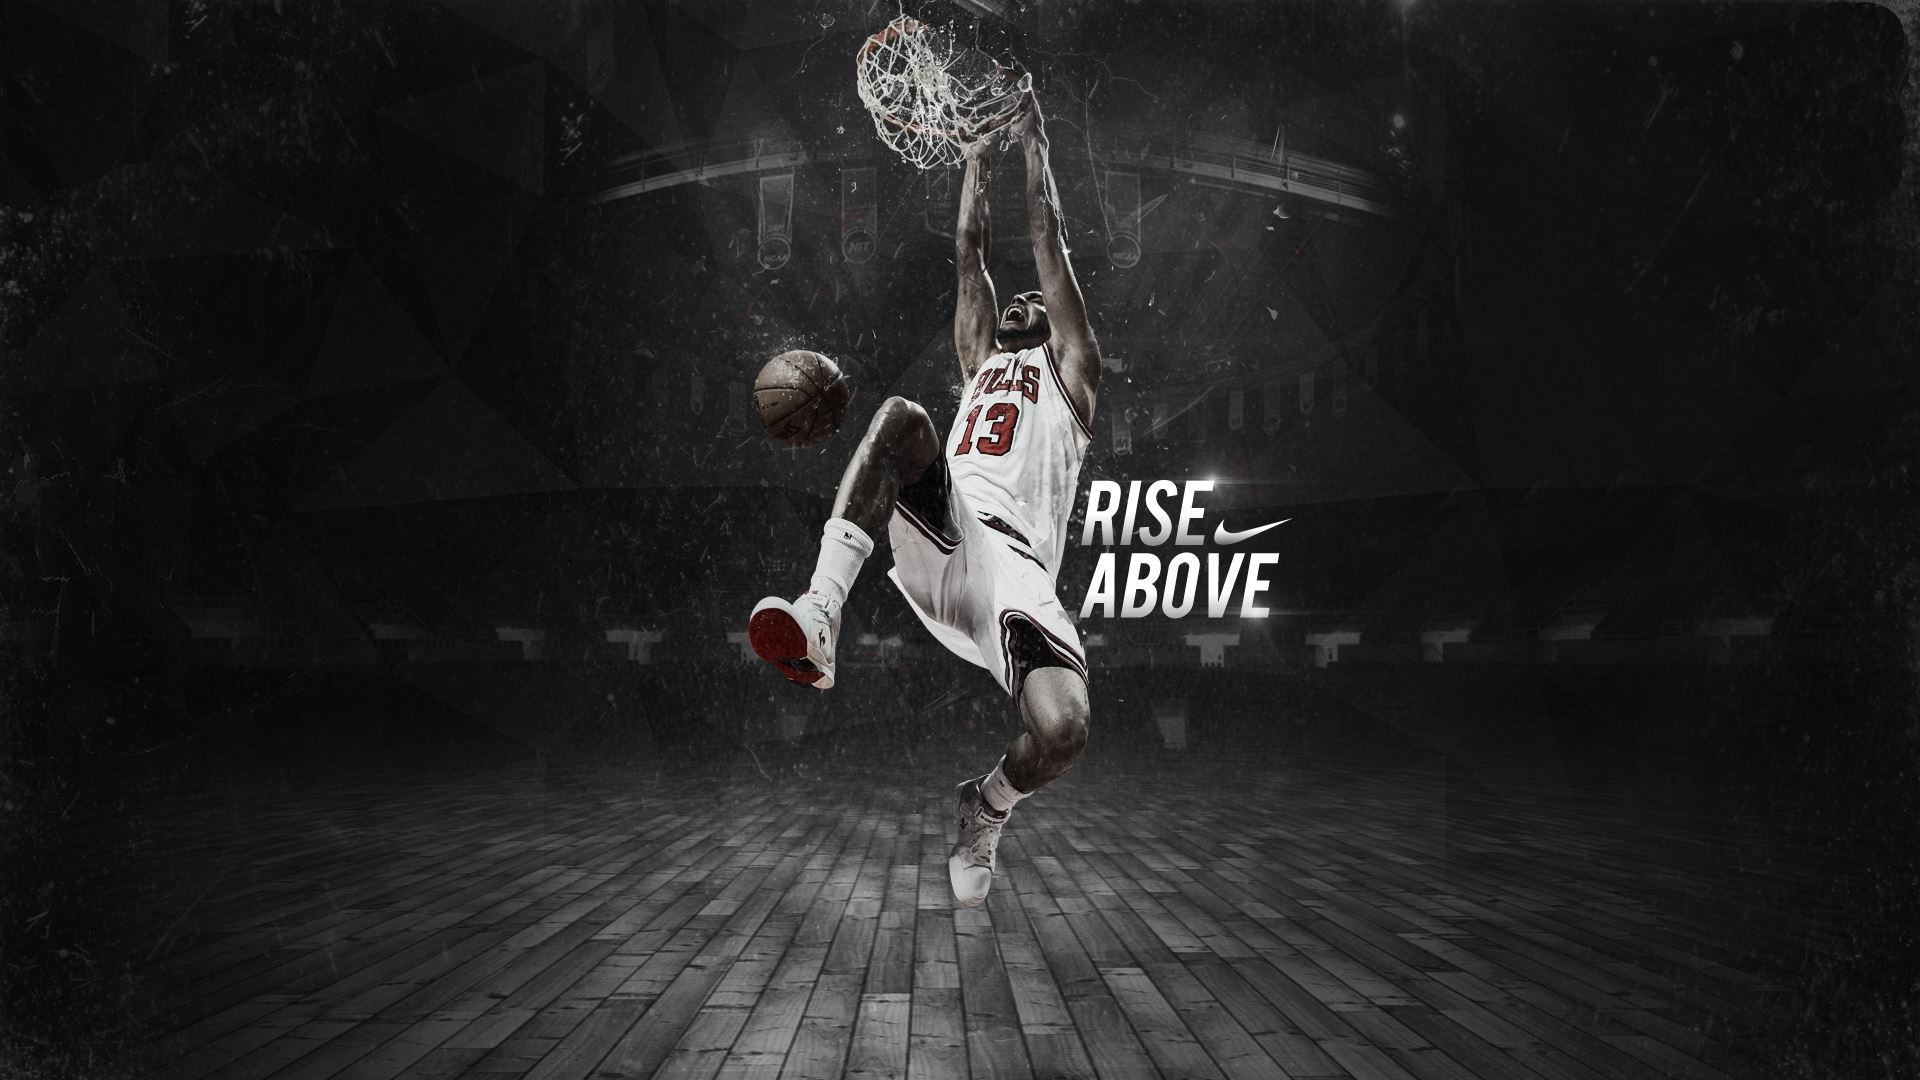 Simple Wallpaper Home Screen Basketball - 1120236-gorgerous-college-basketball-wallpaper-1920x1080-image  Graphic_48259.jpg